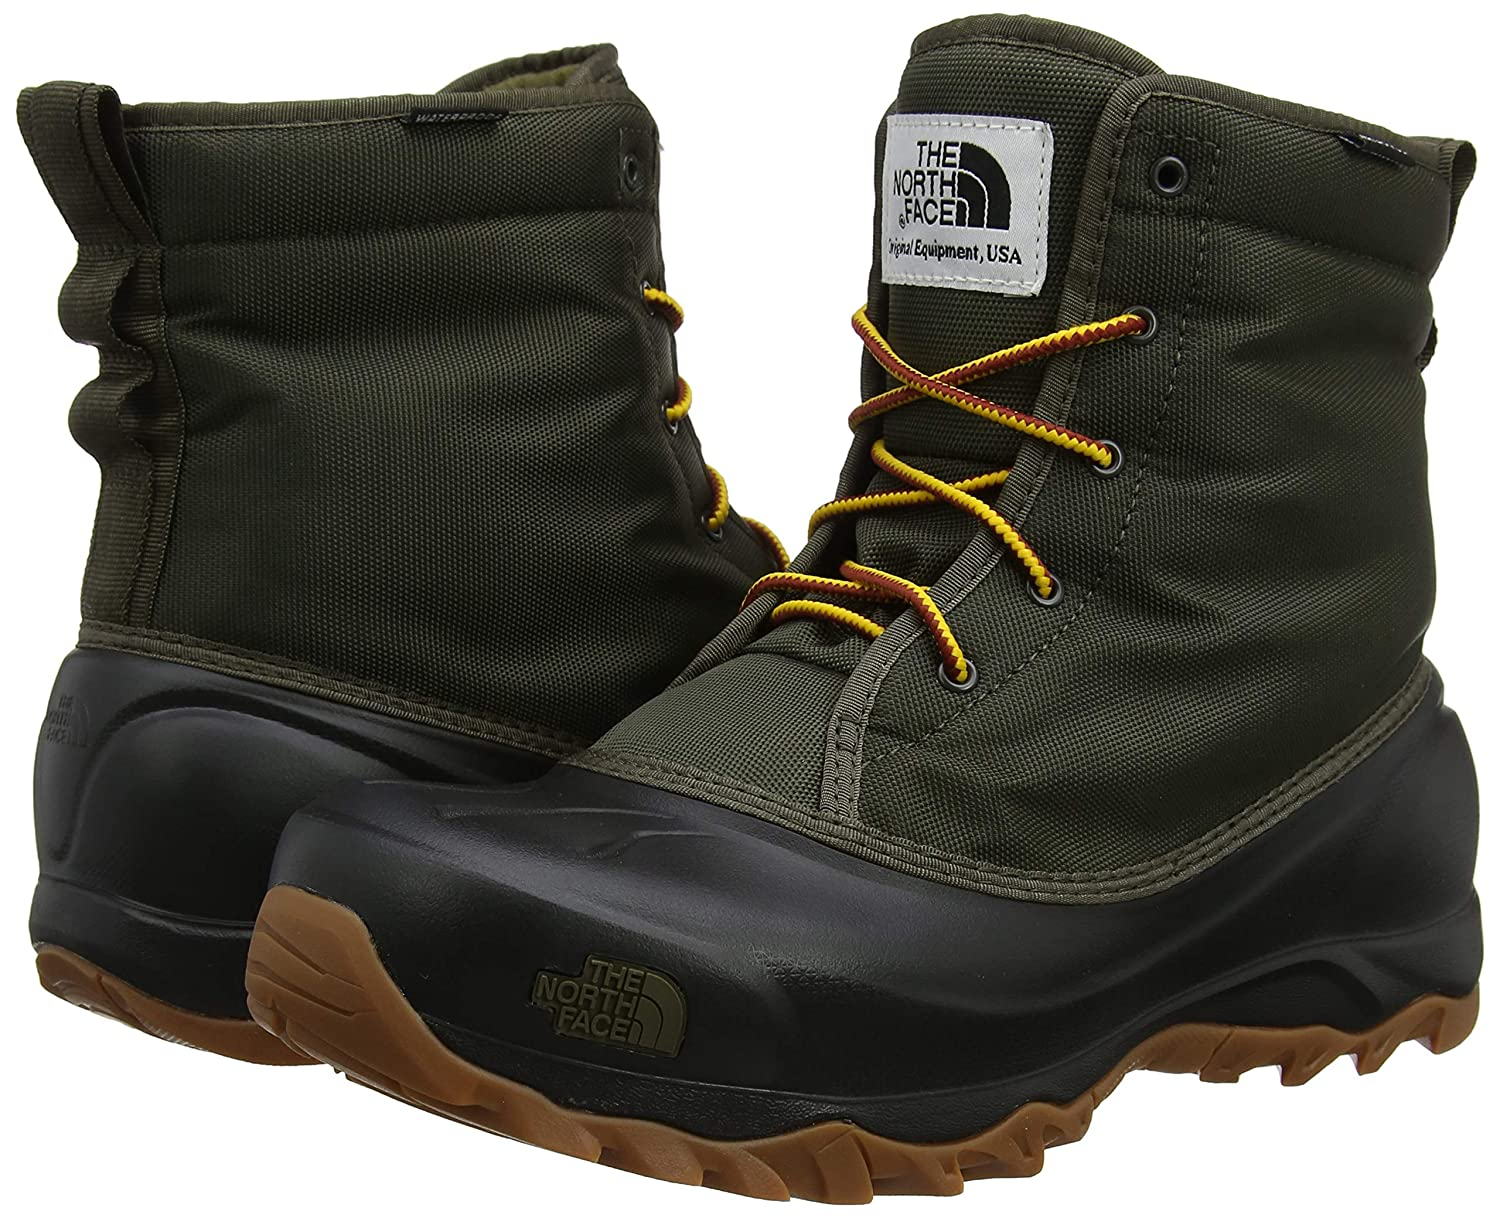 THE NORTH FACE Herren Men's Grün Tsumoru Boot Schneestiefel, grün, Grün Men's (Tarmac Green/Tnf Black 5ua) 8a59f1